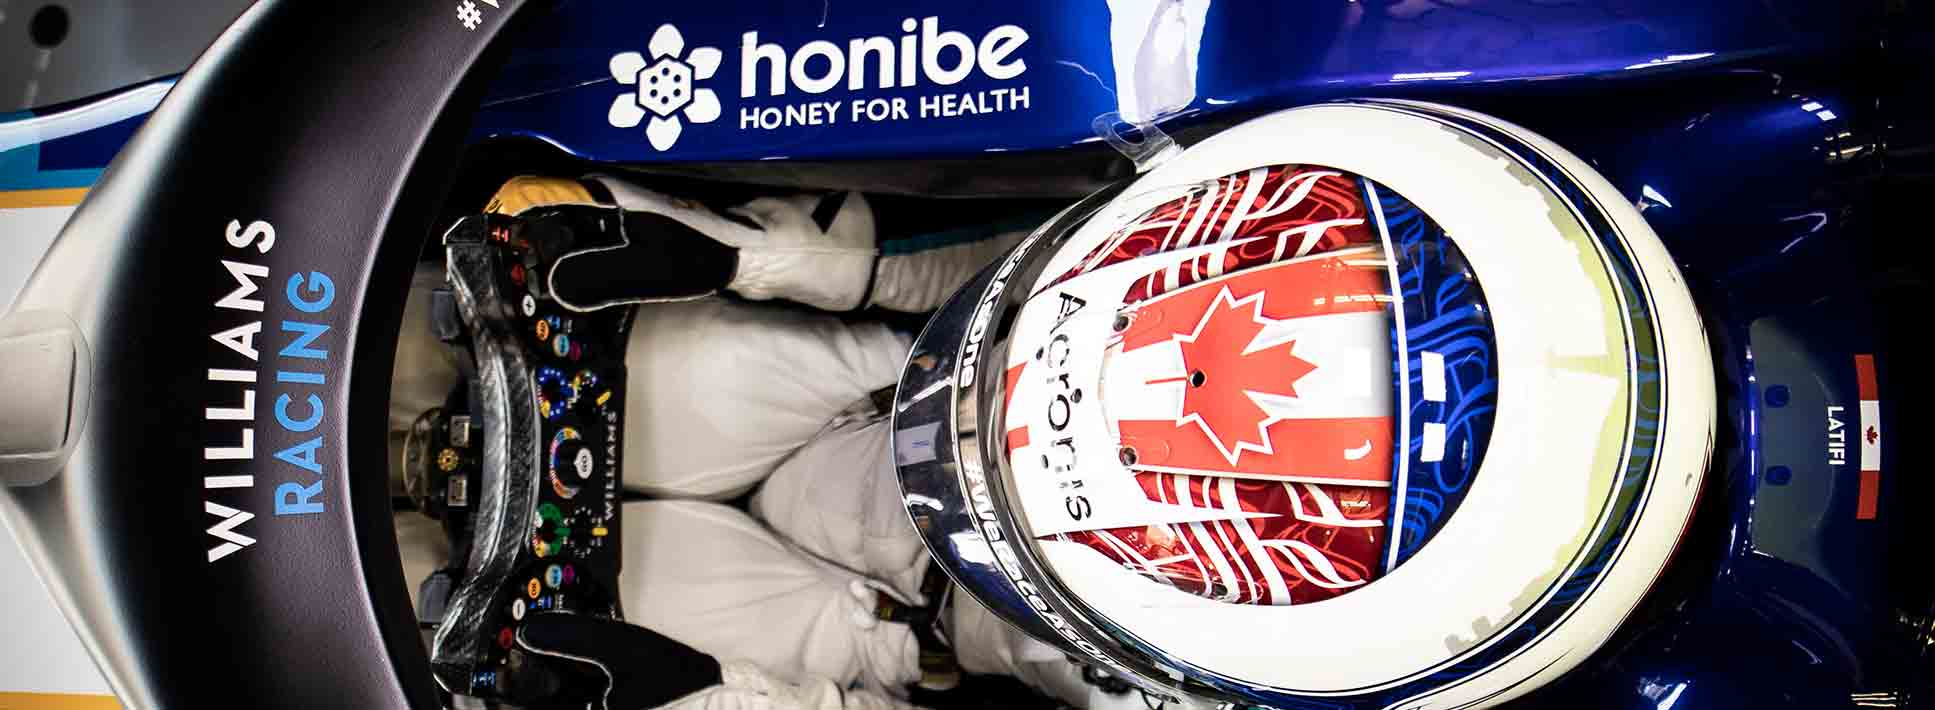 Williams Racing Welcomes Honibe® as Official Partner